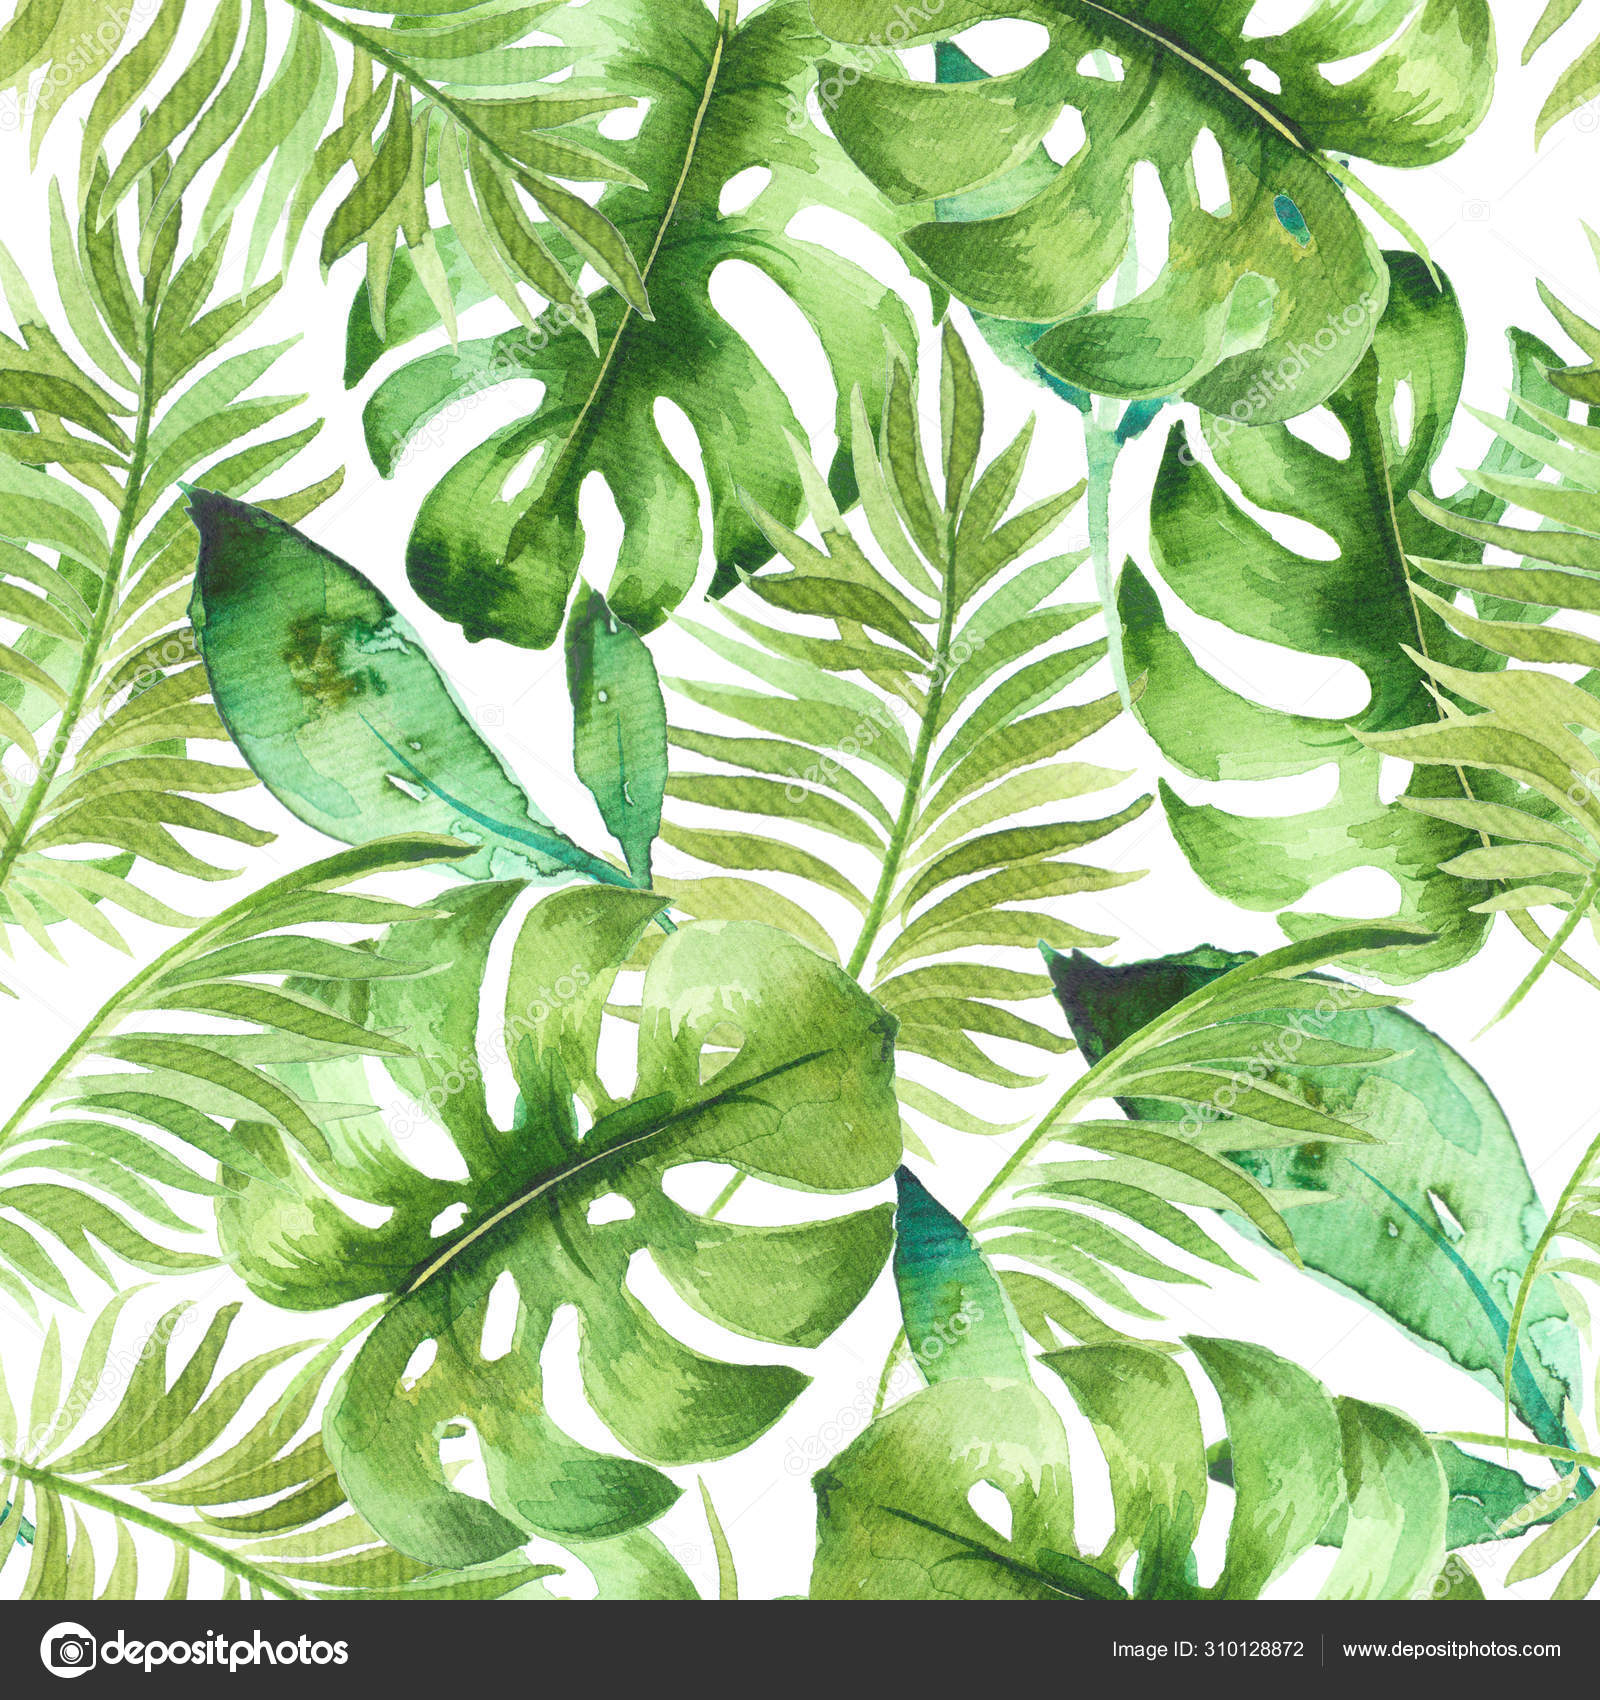 Watercolor Seamless Pattern Beautiful Tropical Exotic Leaves Best Background Wallpaper Stock Photo C Dervik 310128872 Great savings & free delivery / collection on many items. depositphotos